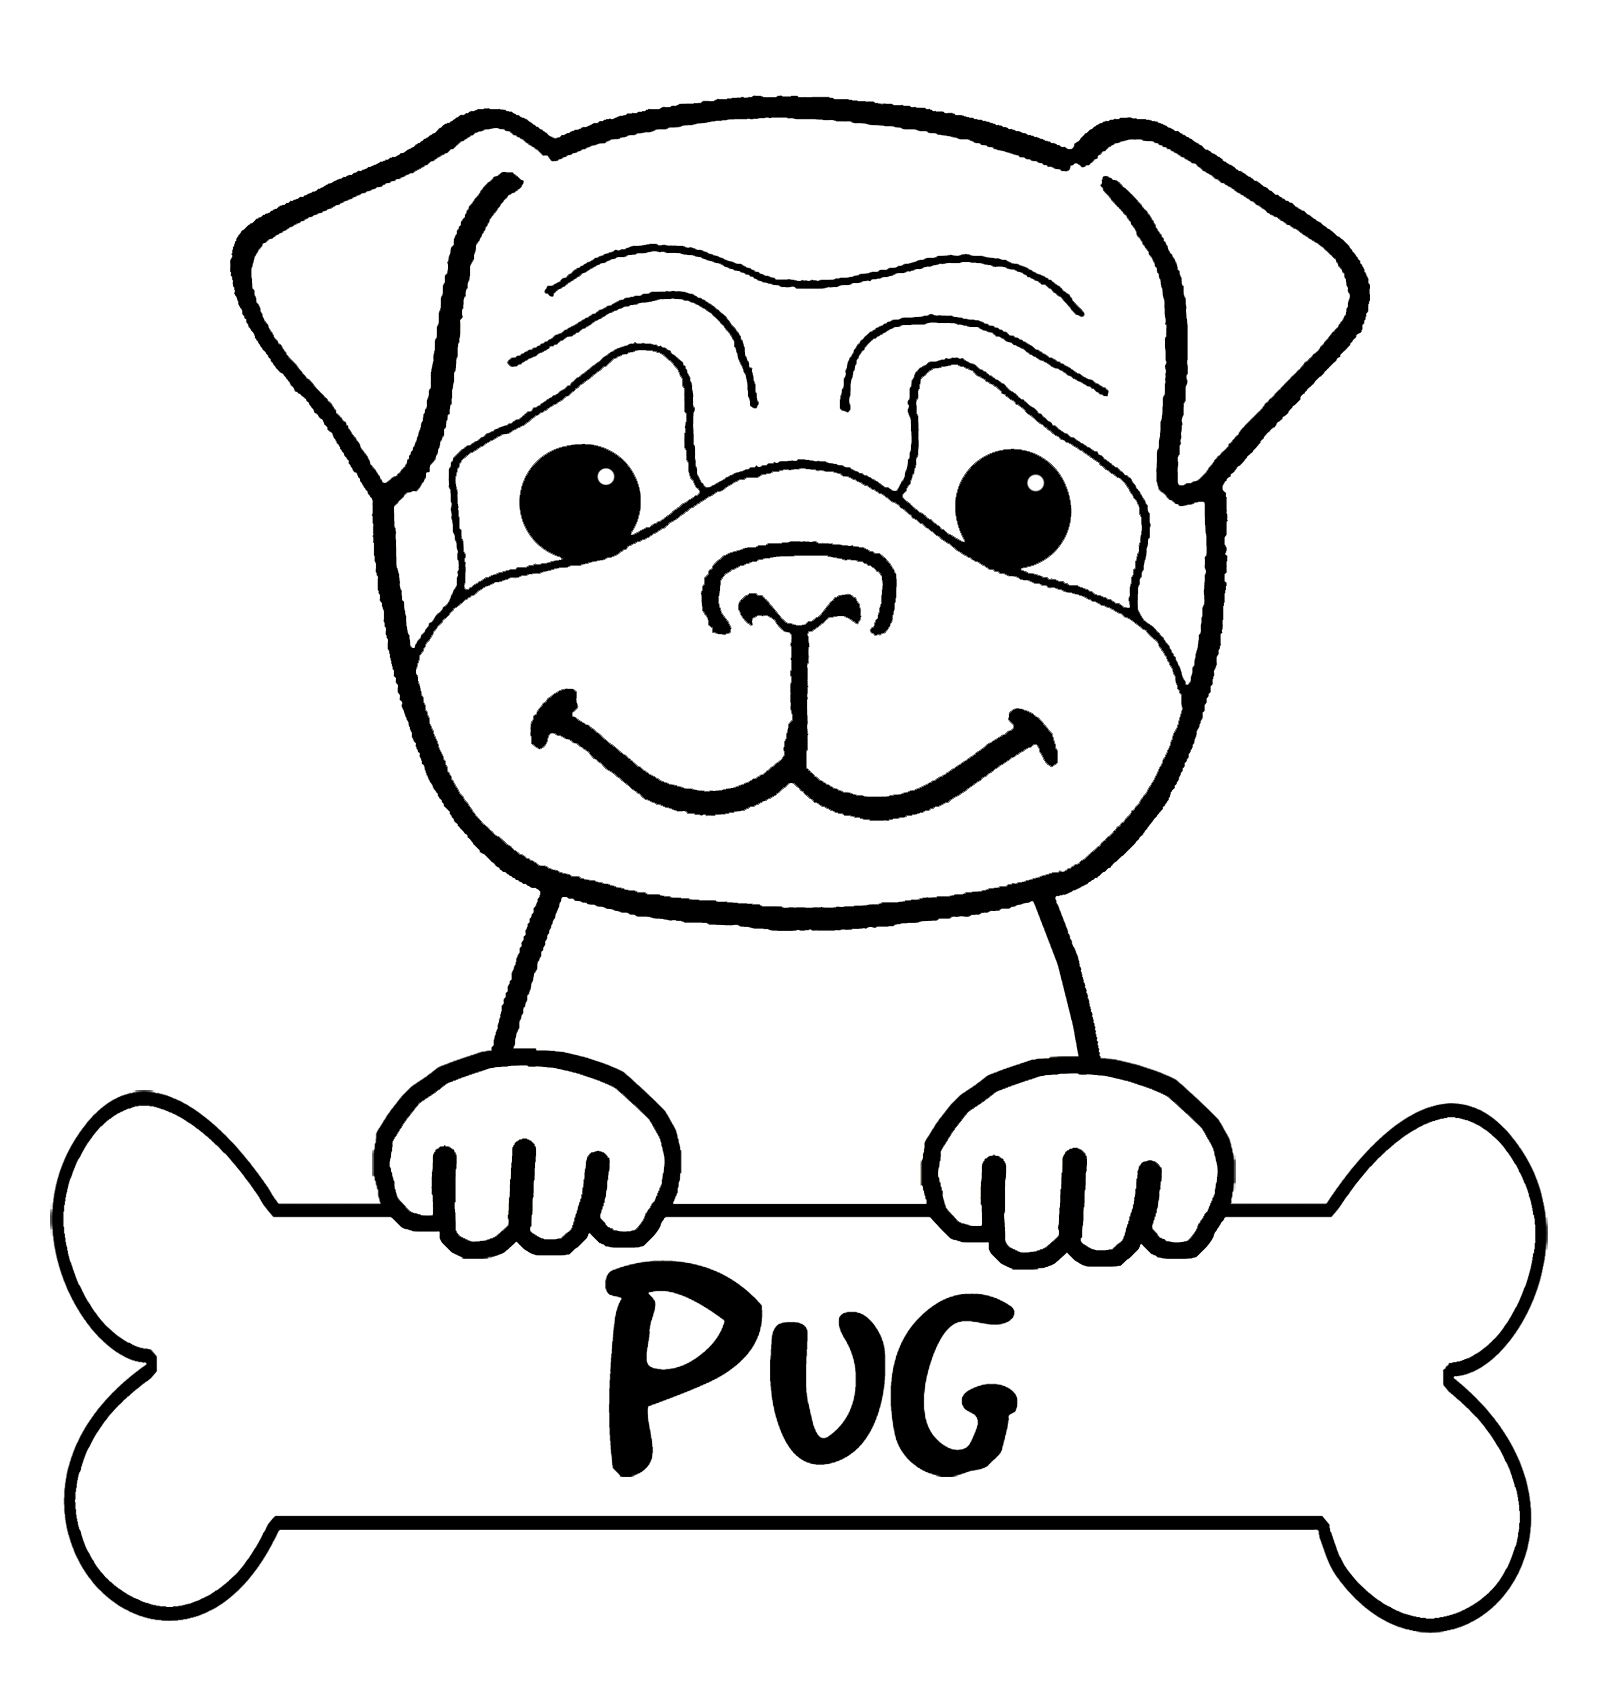 pug coloring pages pug coloring pages to download and print for free pages pug coloring